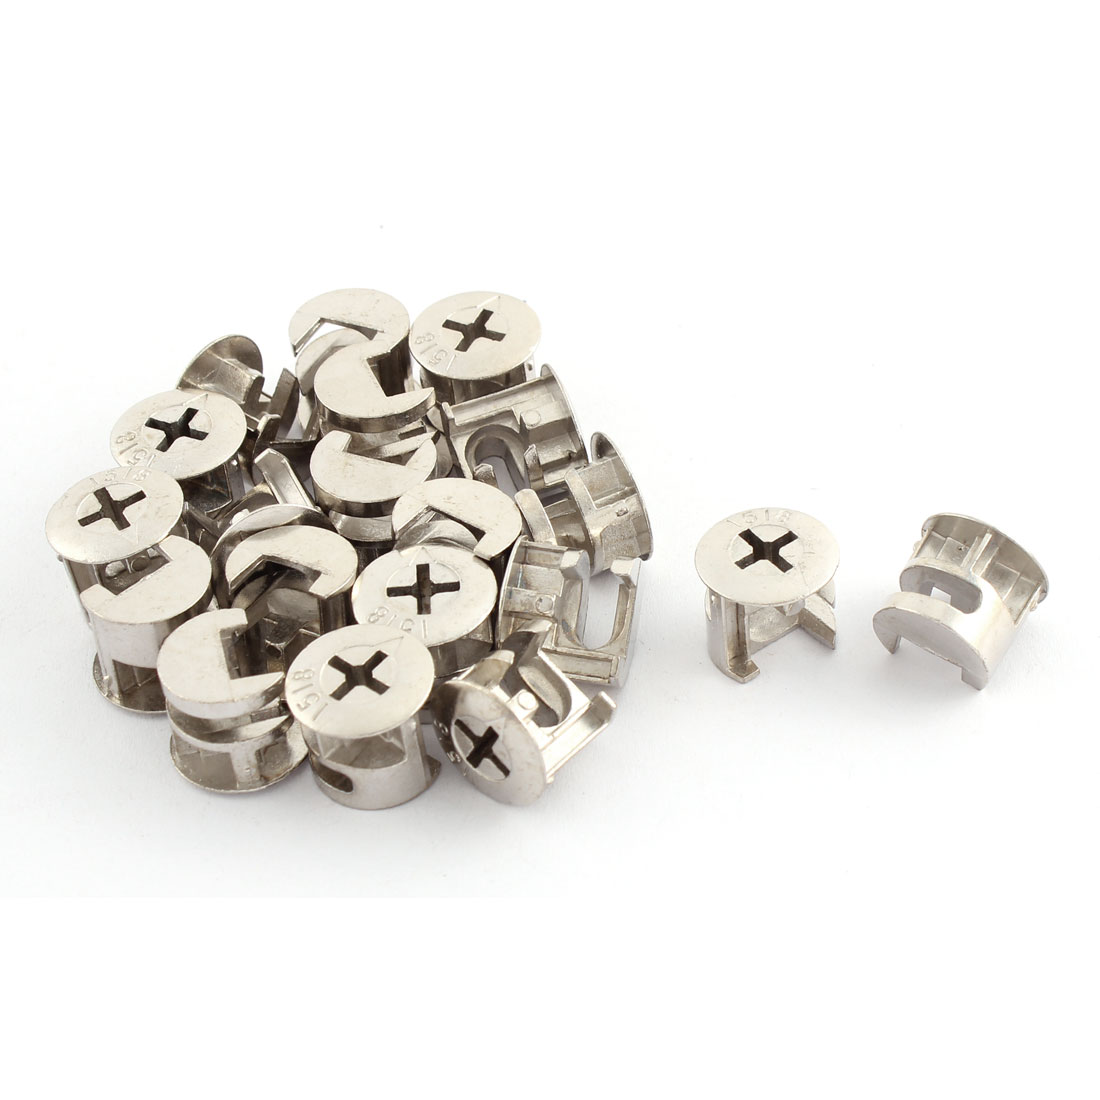 15.5mm Dia Cross Head Metal Cabinet Furniture Connect Cam Fittings Silver Tone 20 Pcs